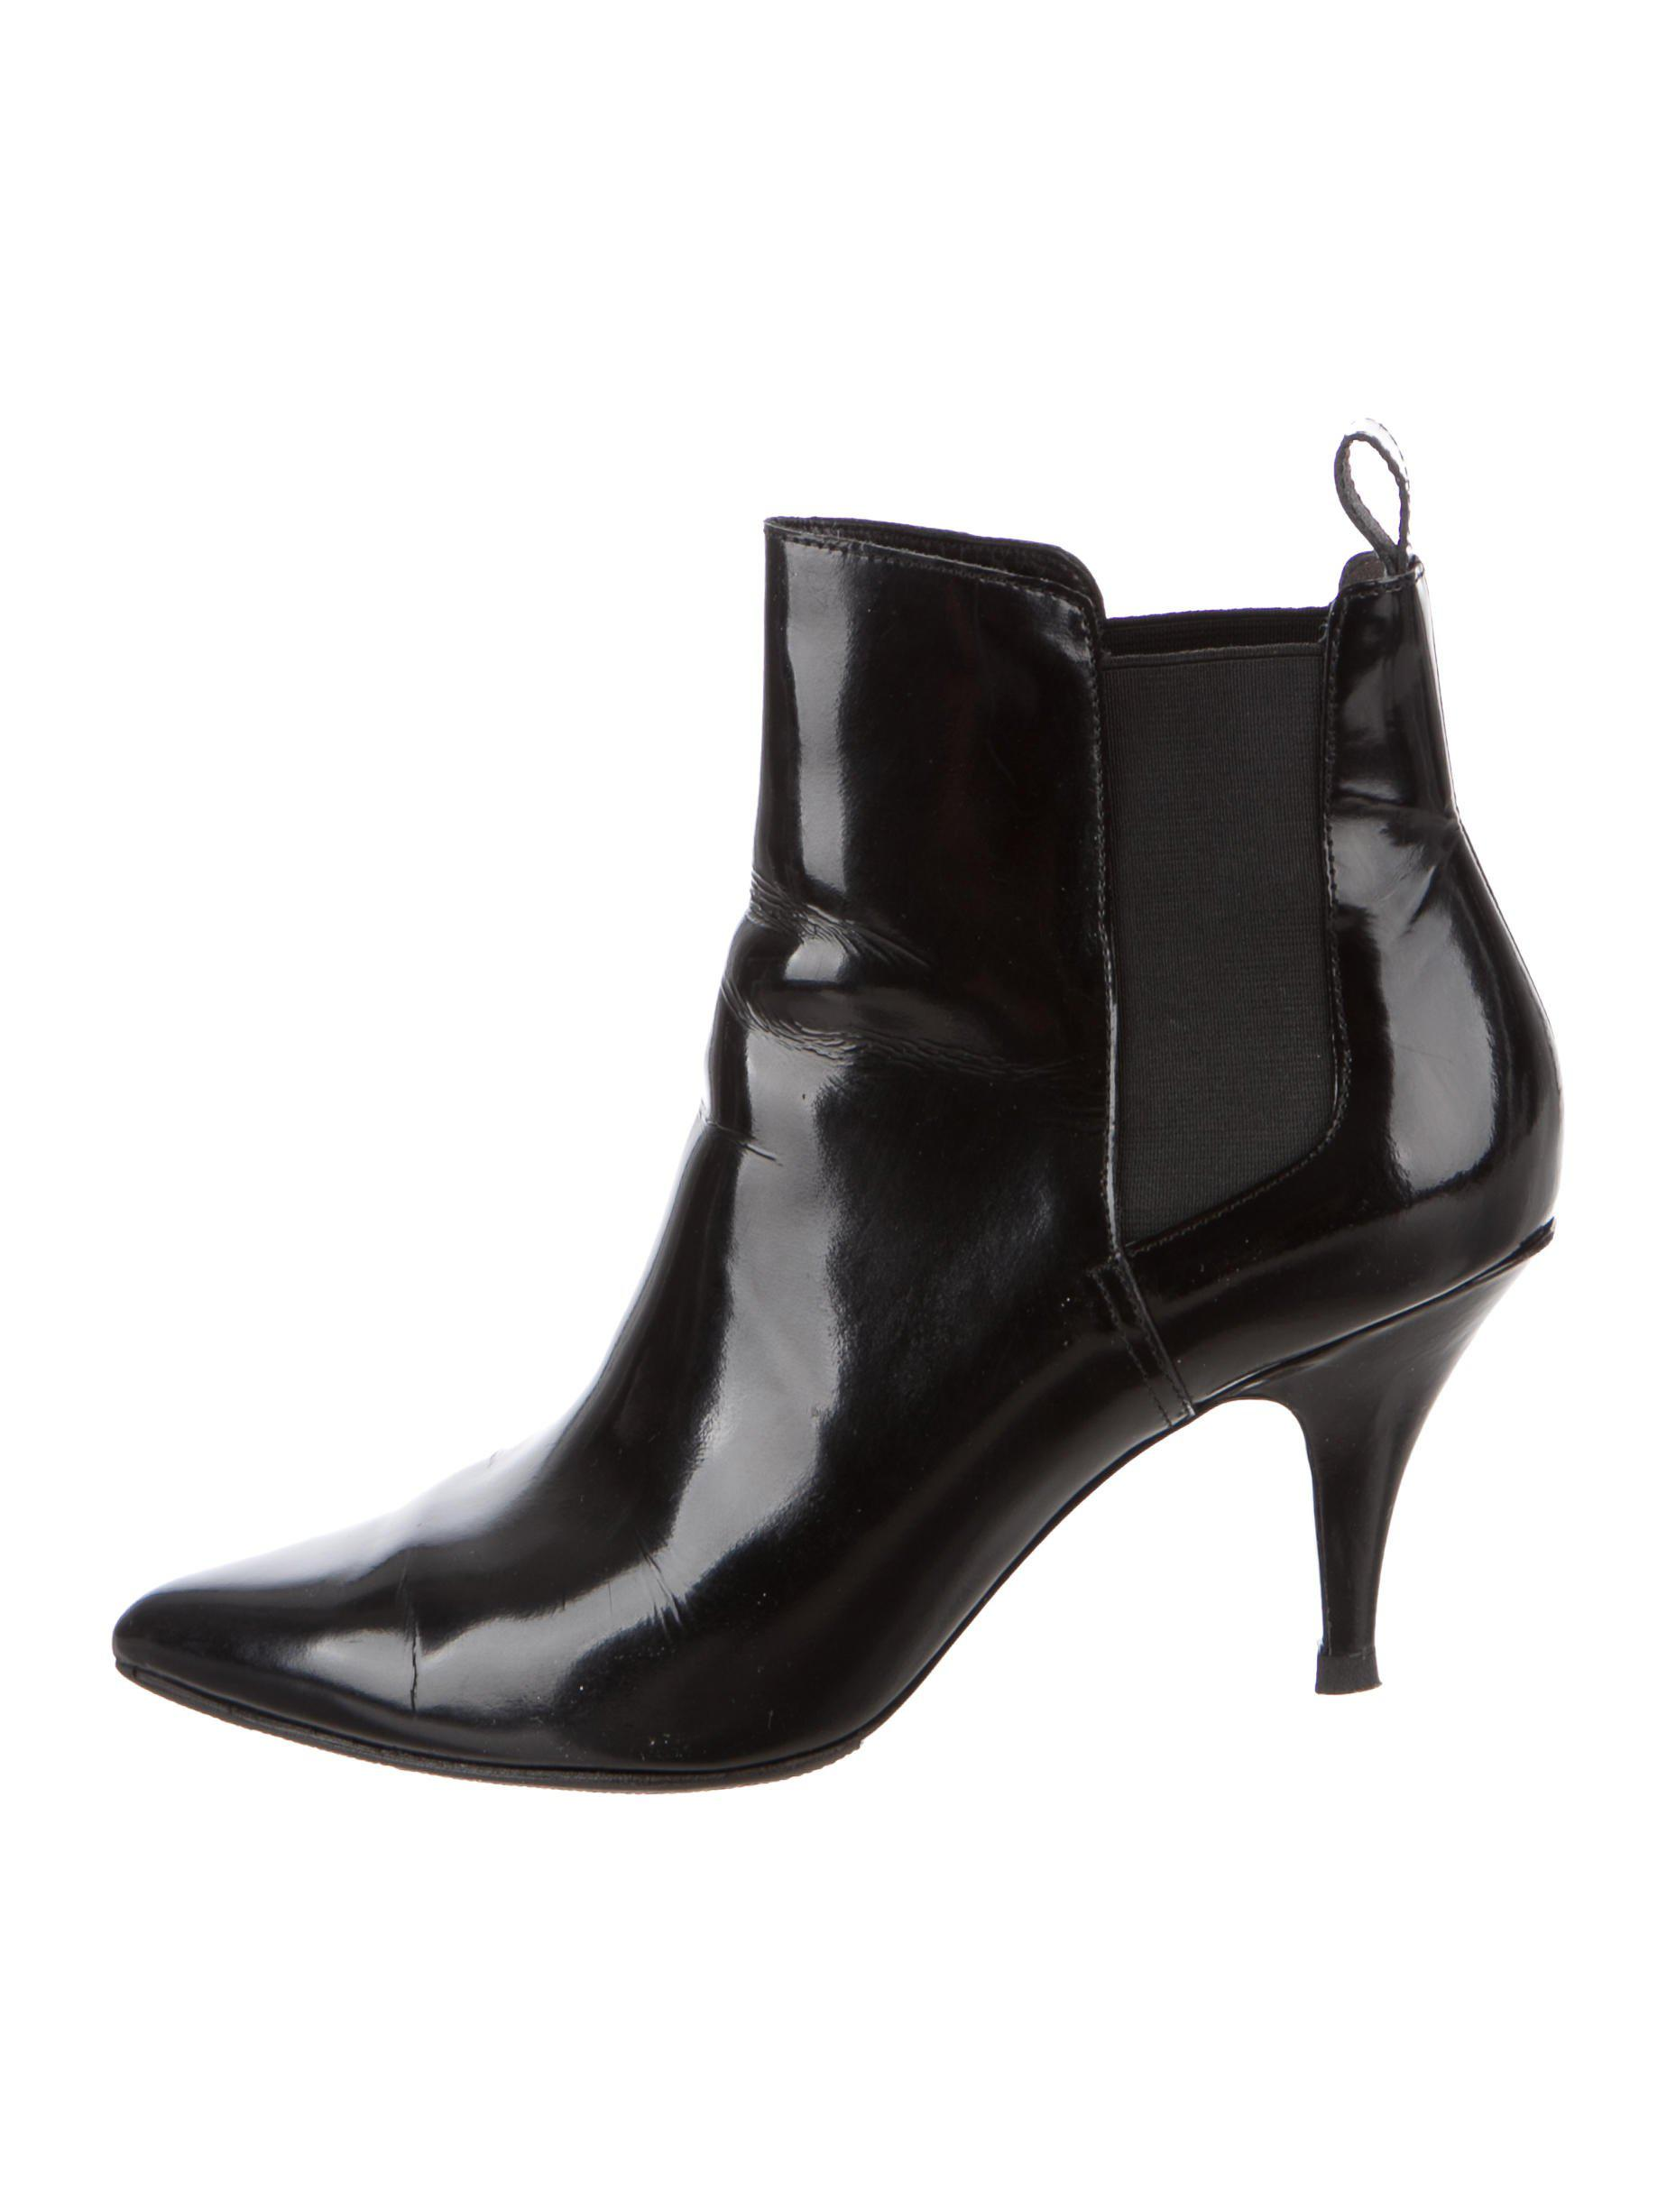 3.1 Phillip Lim Bunty Ankle Boots clearance low shipping for sale 2014 discount outlet store TWKYuRjcH